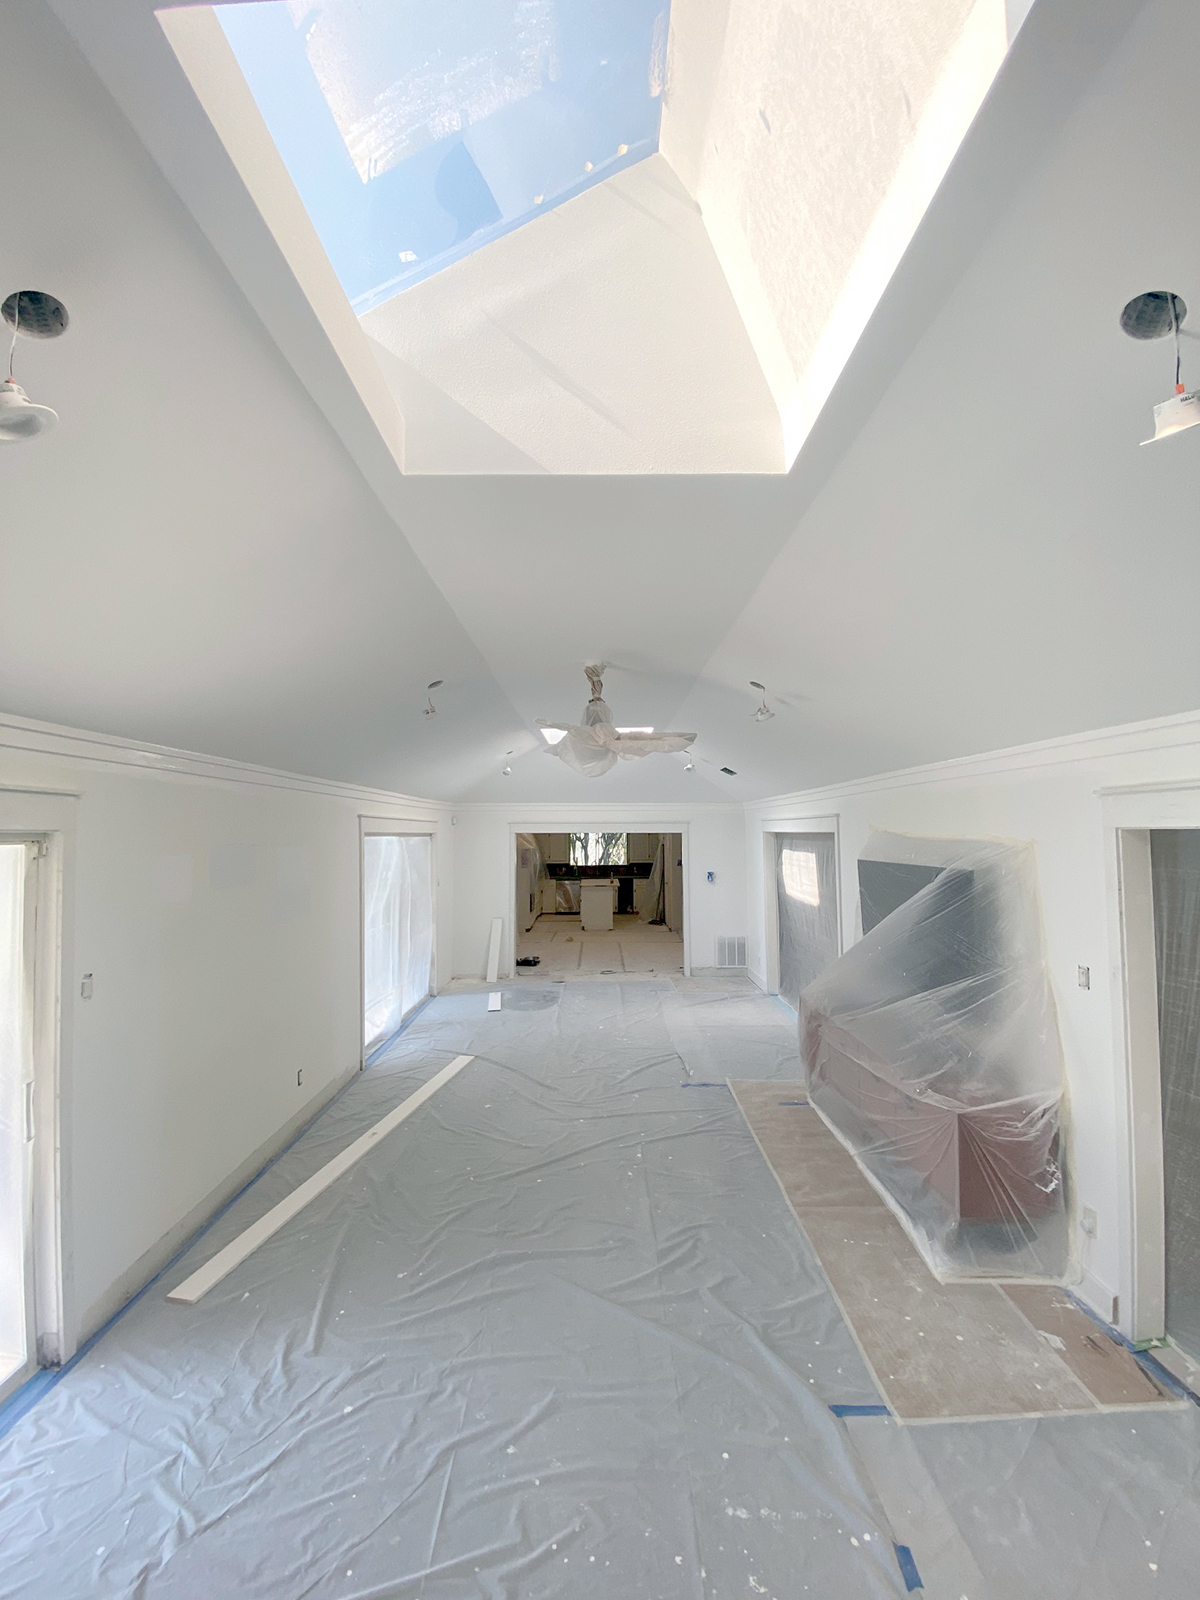 Living Room - ceiling completed